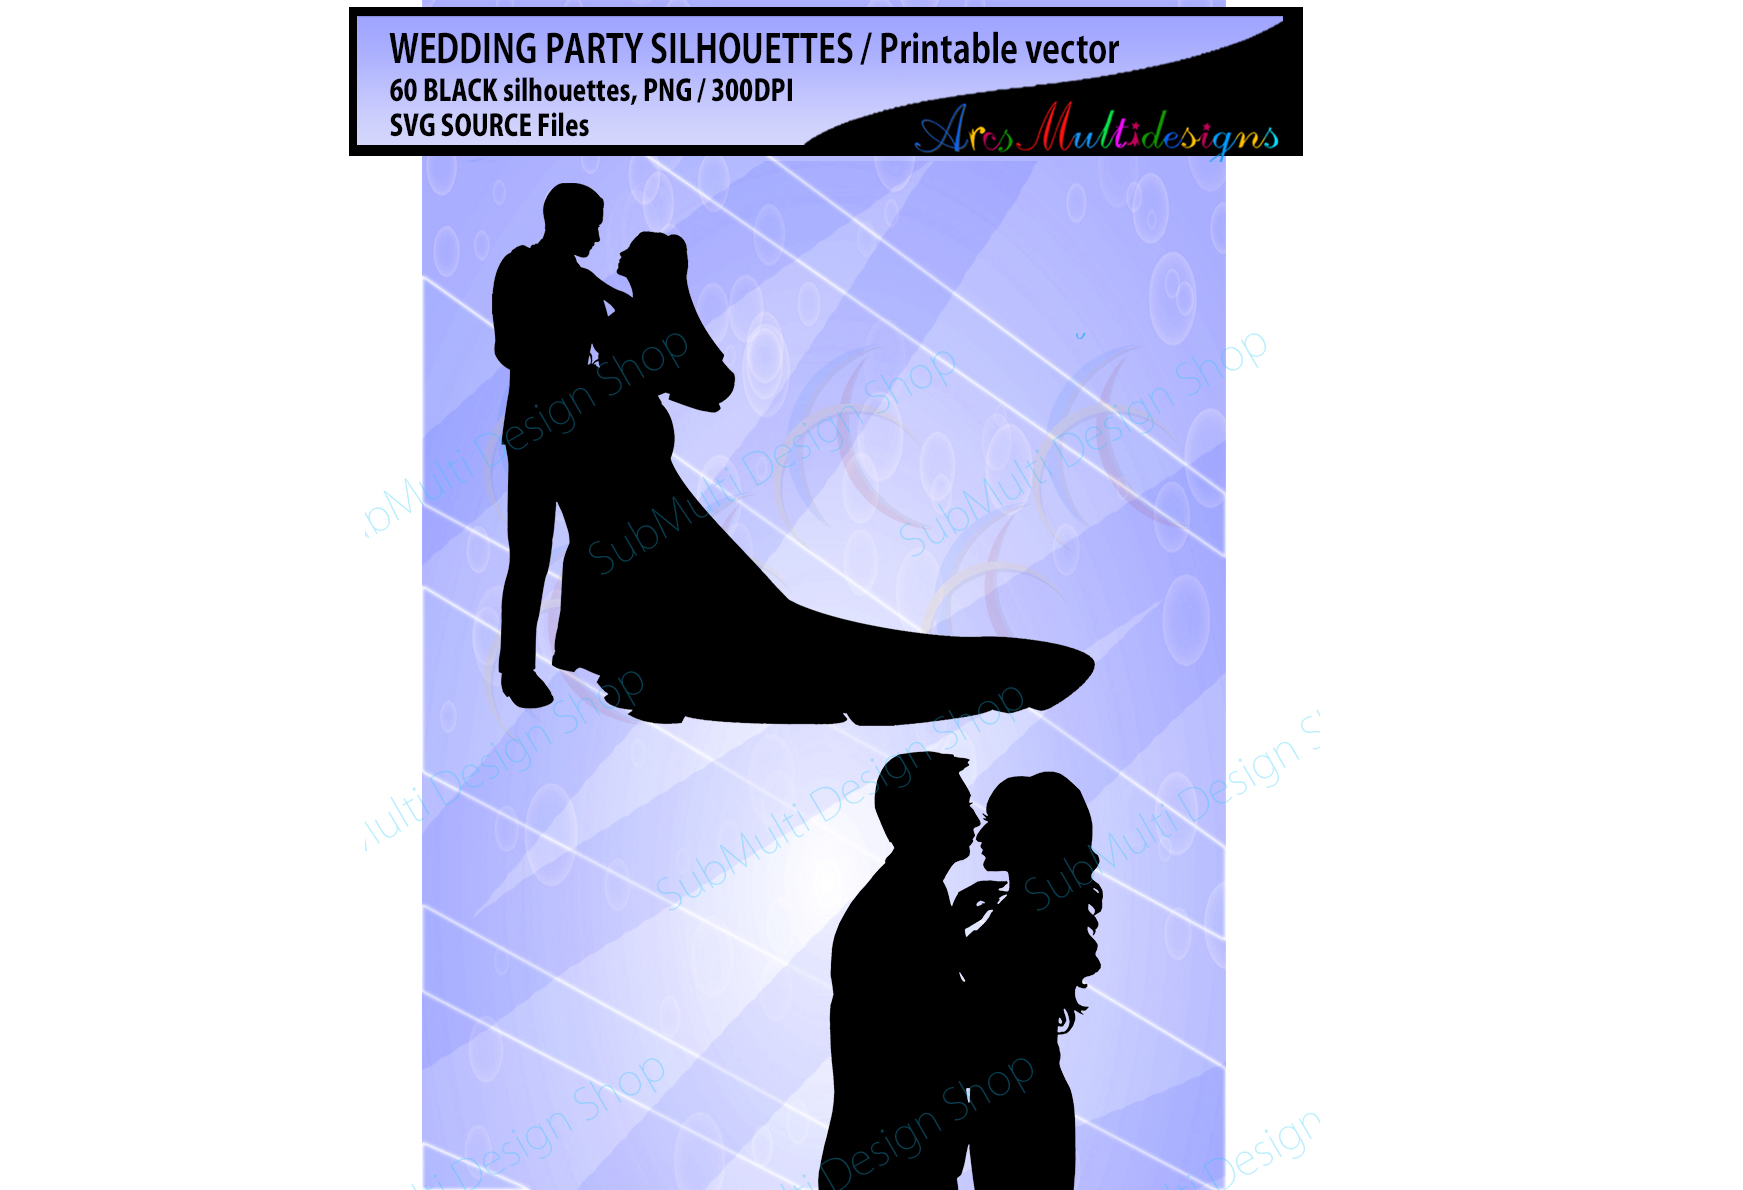 Wedding silhouette SVG / Wedding party silhouette 60 image example image 2